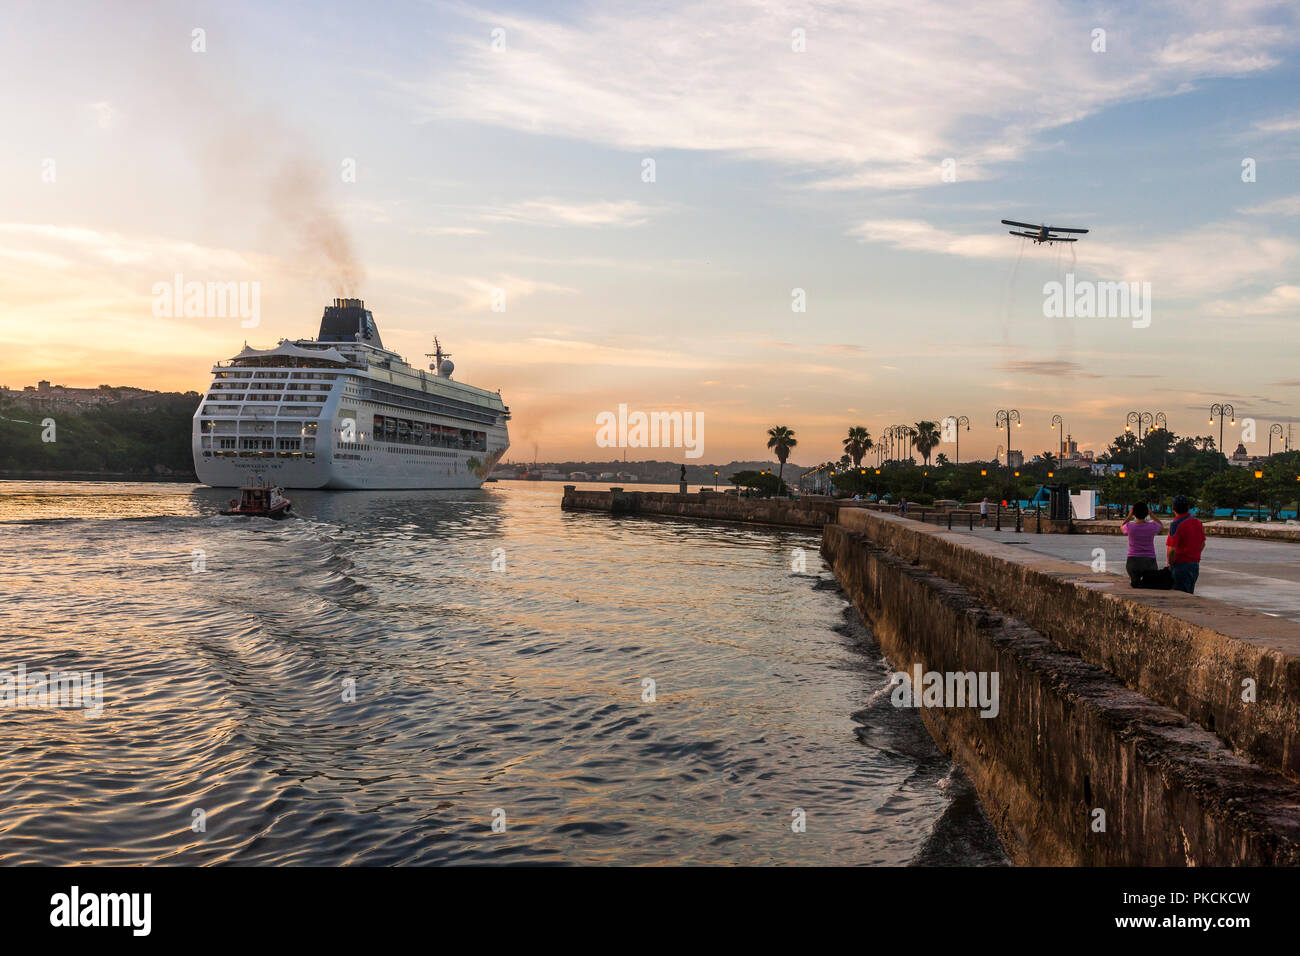 Havana, Cuba. 04th July 2017. Cruise liner Norwegian Sky makes her way up to her dock escorted by the pilot boat while an old vintage biplane flies ov - Stock Image